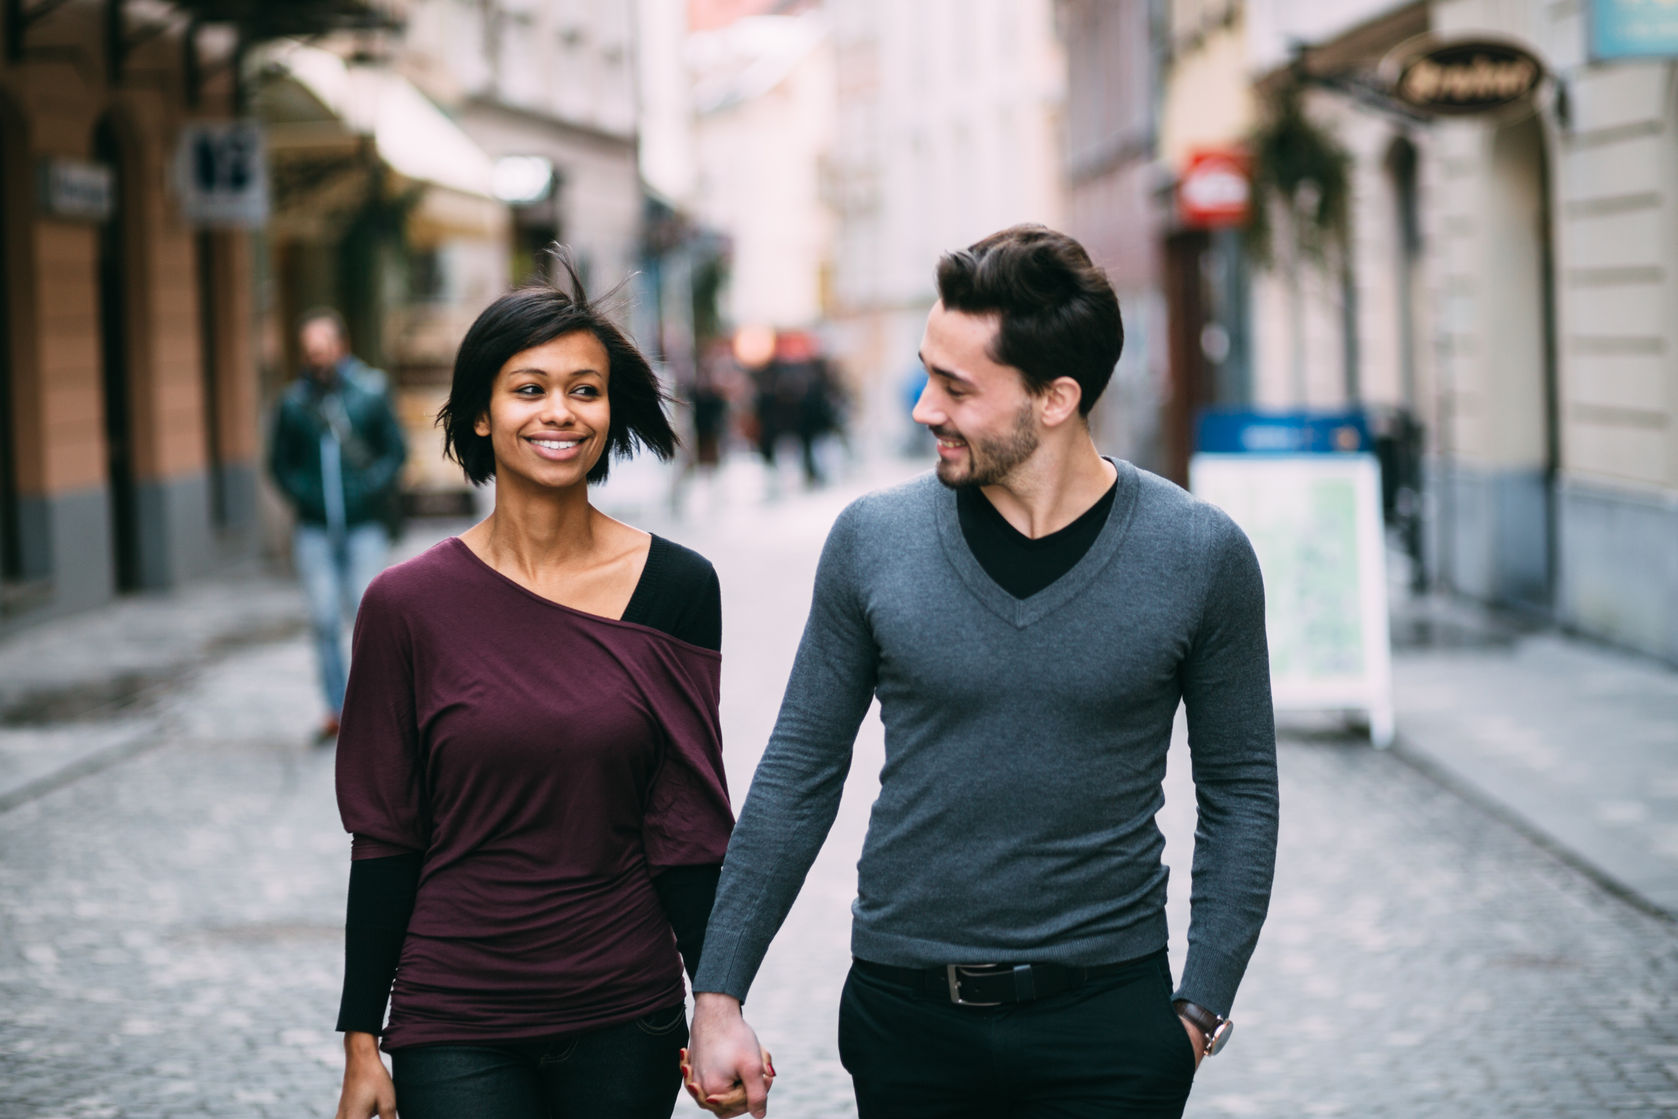 36766213 - interracial couple holding hands on the street